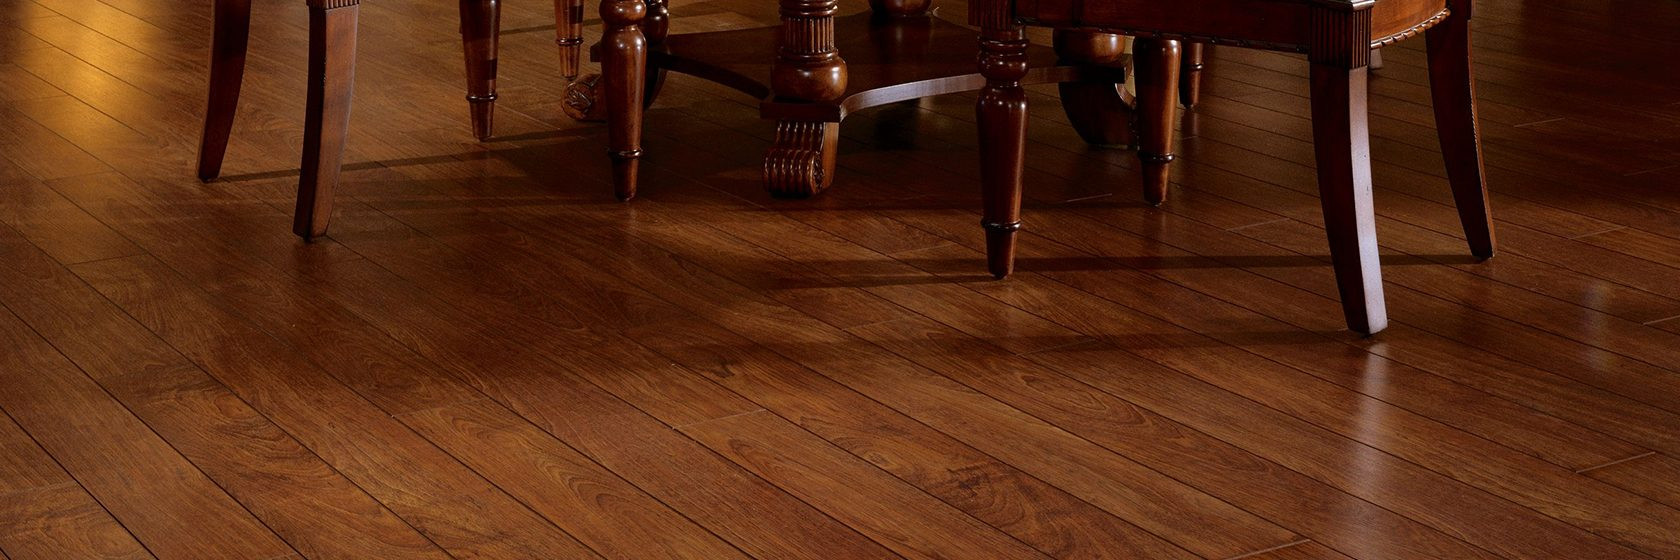 bruce hardwood flooring installation guide of laminate exotic olive ash l8708 with hero l 1680 560